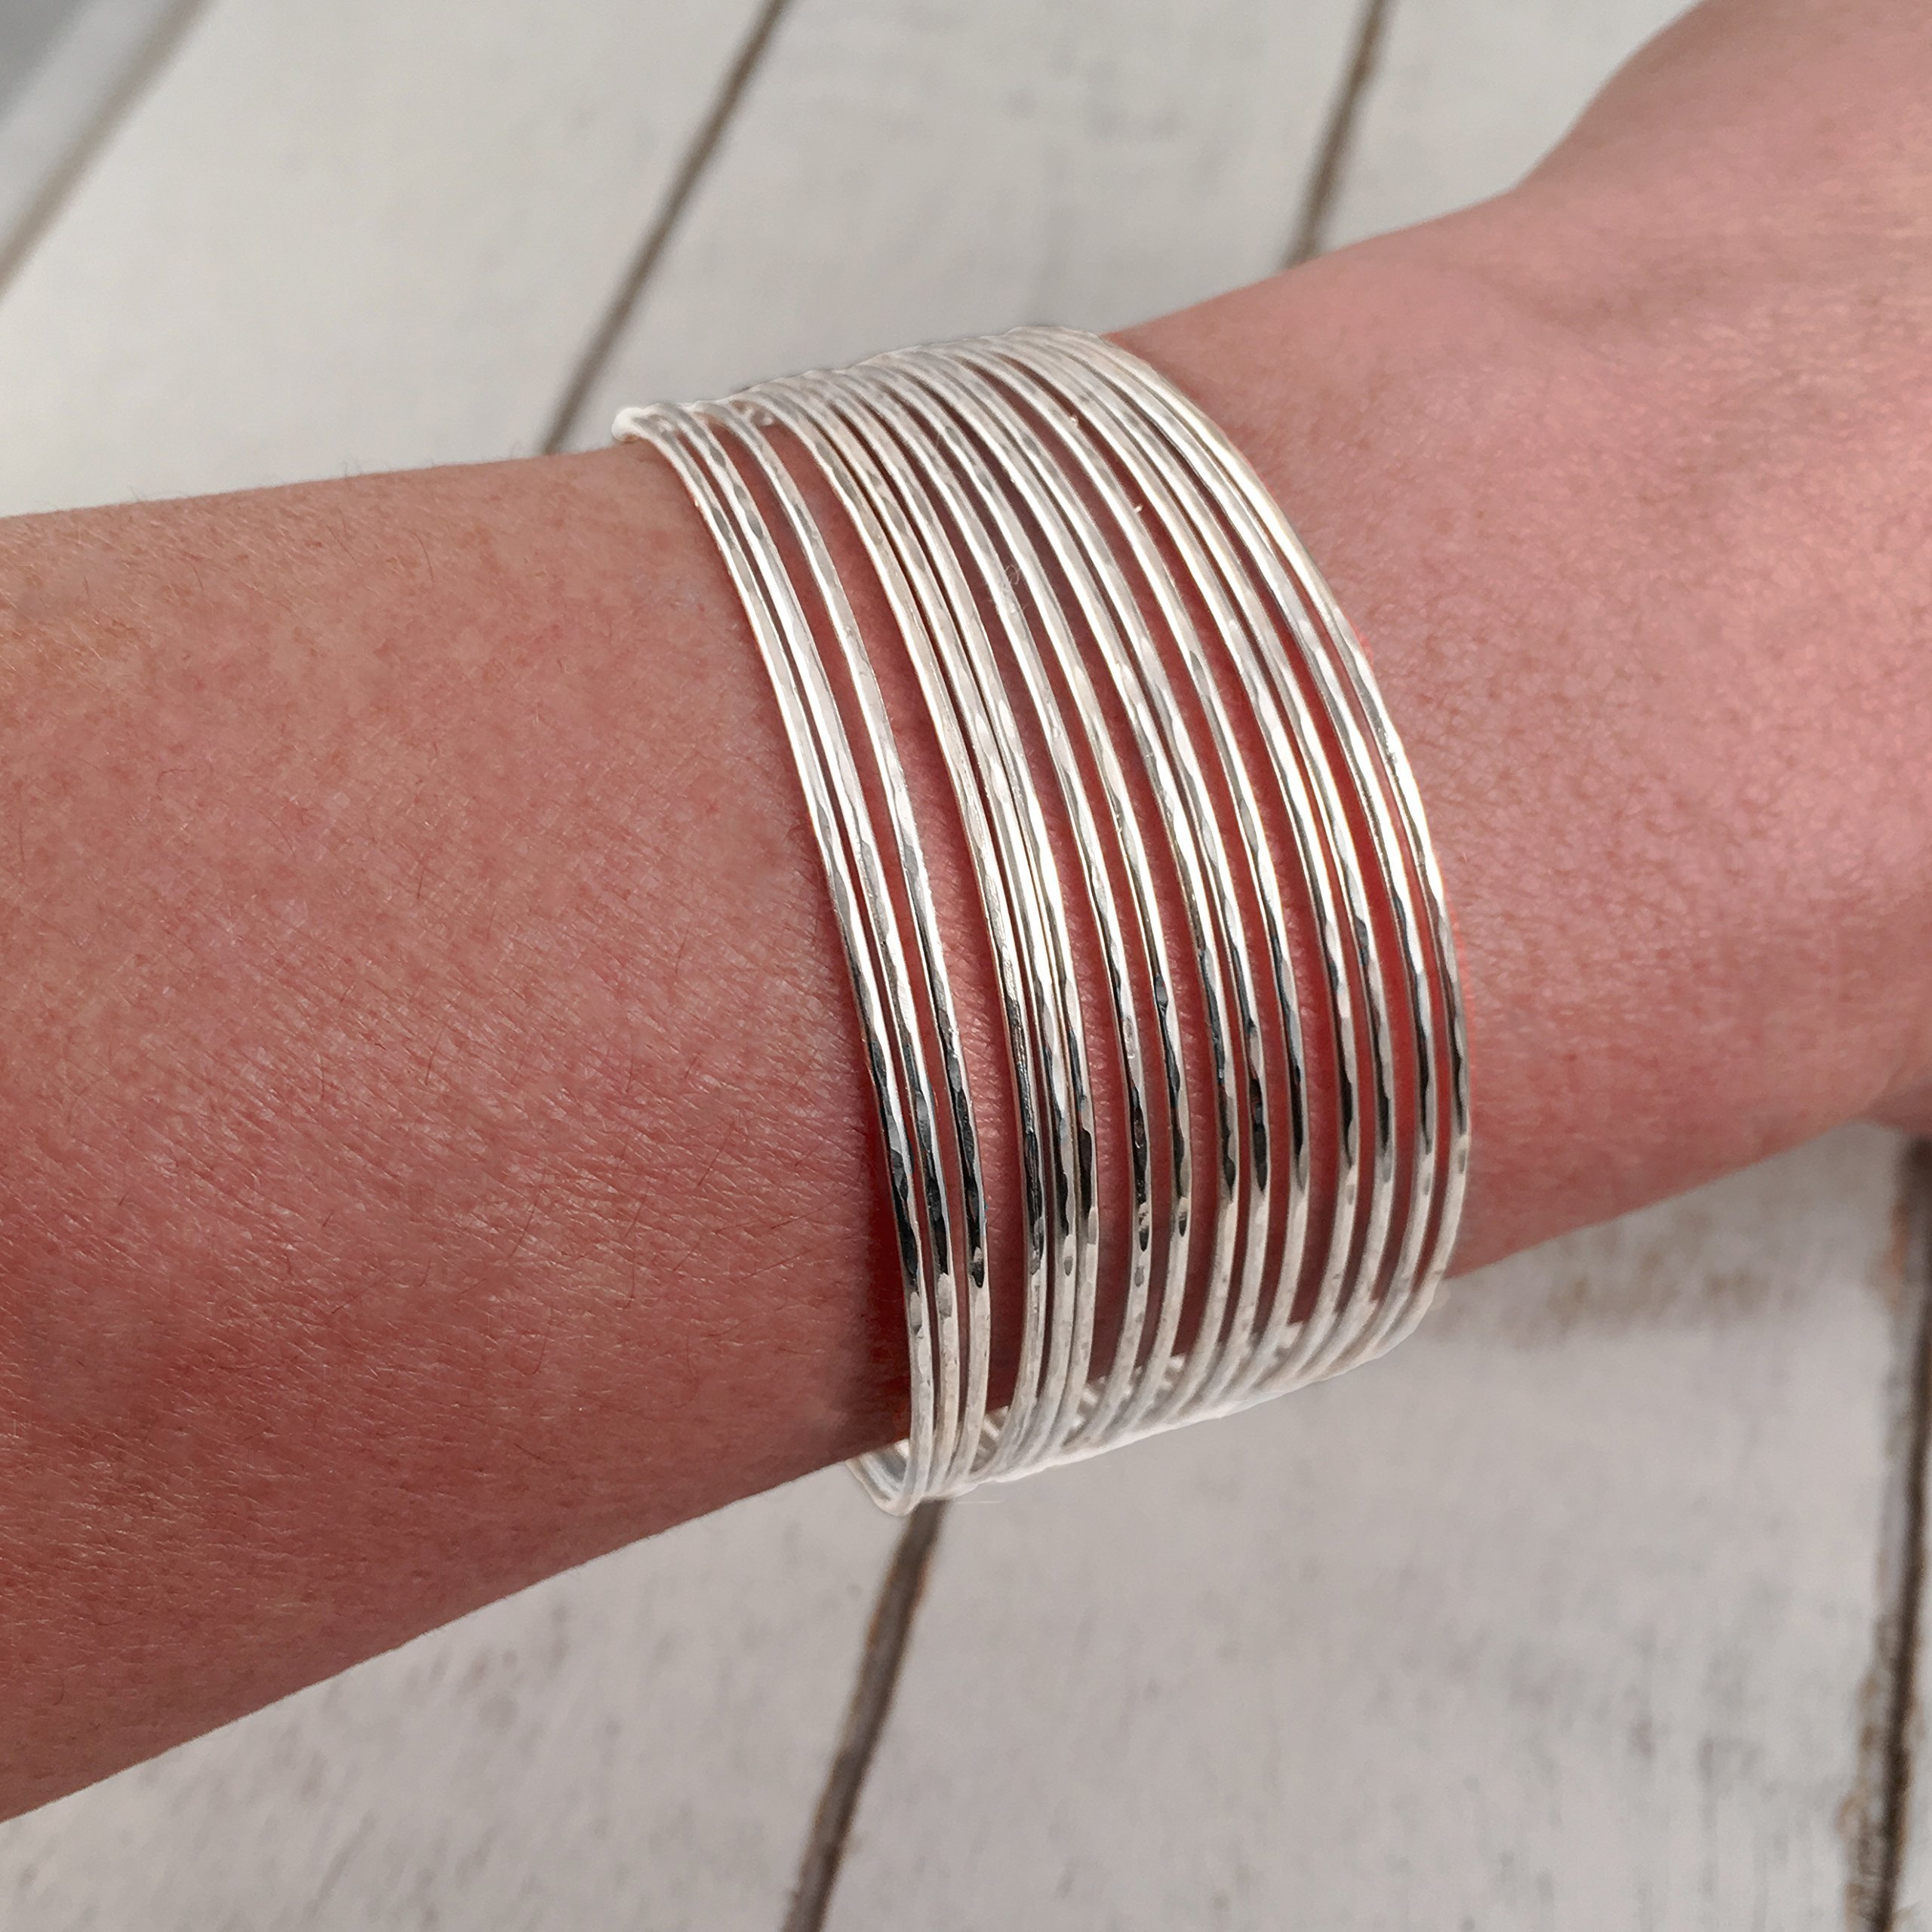 Multiple Wire Strand Bangle Cuff Bracelet, Sterling Silver 925 Polished Finish, Shiny Lightweight Statement Piece. Handmade by Claudia Lira in Peru. - READY TO ORDER -